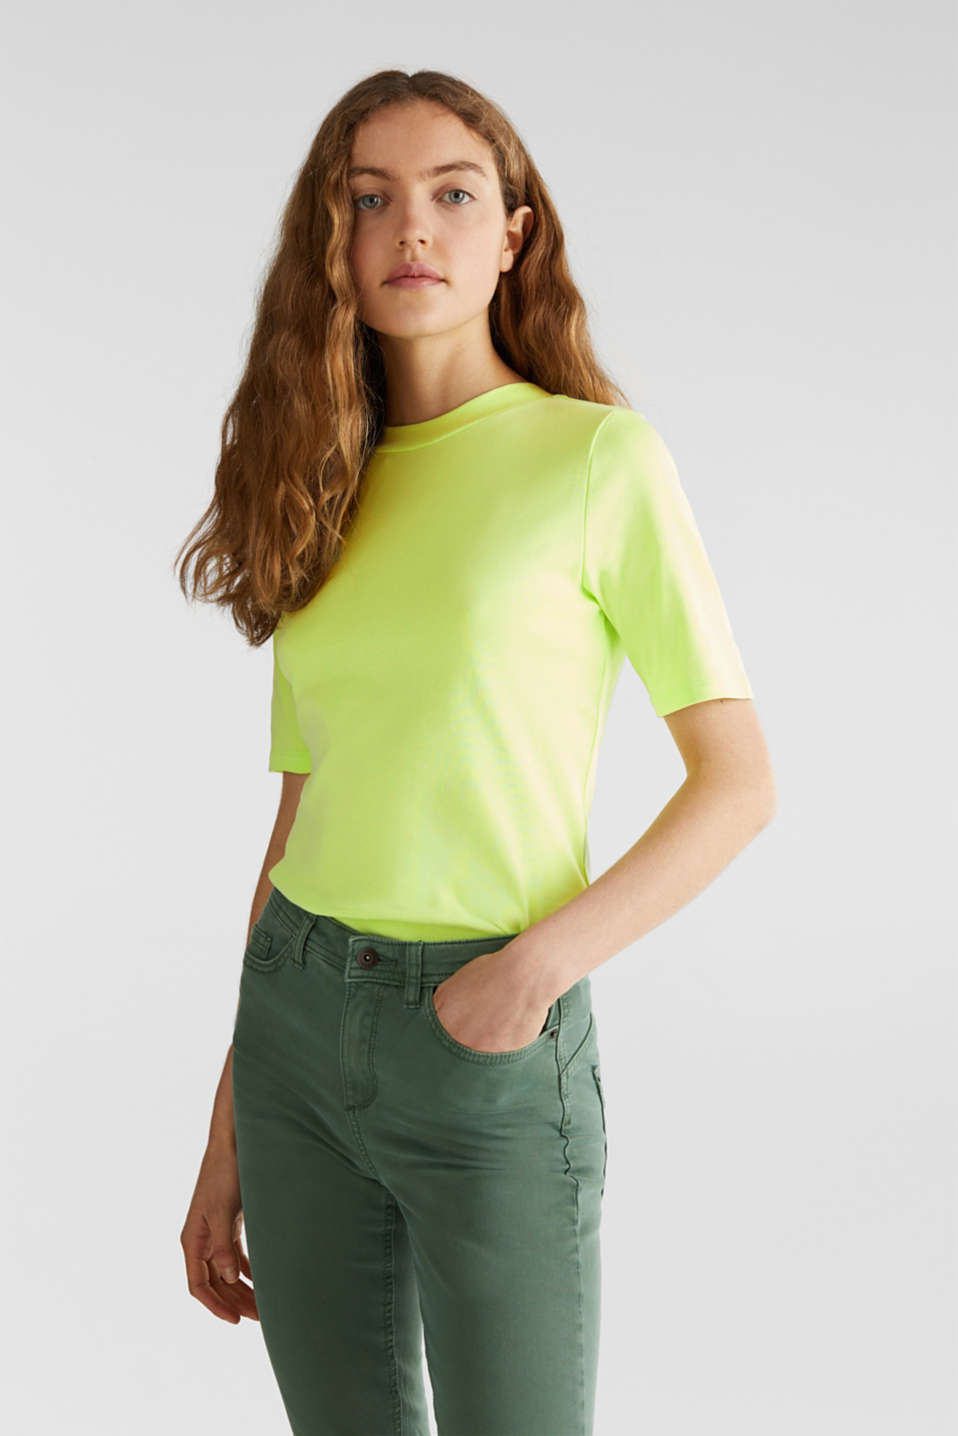 edc - NEON top with a band collar, 100% cotton